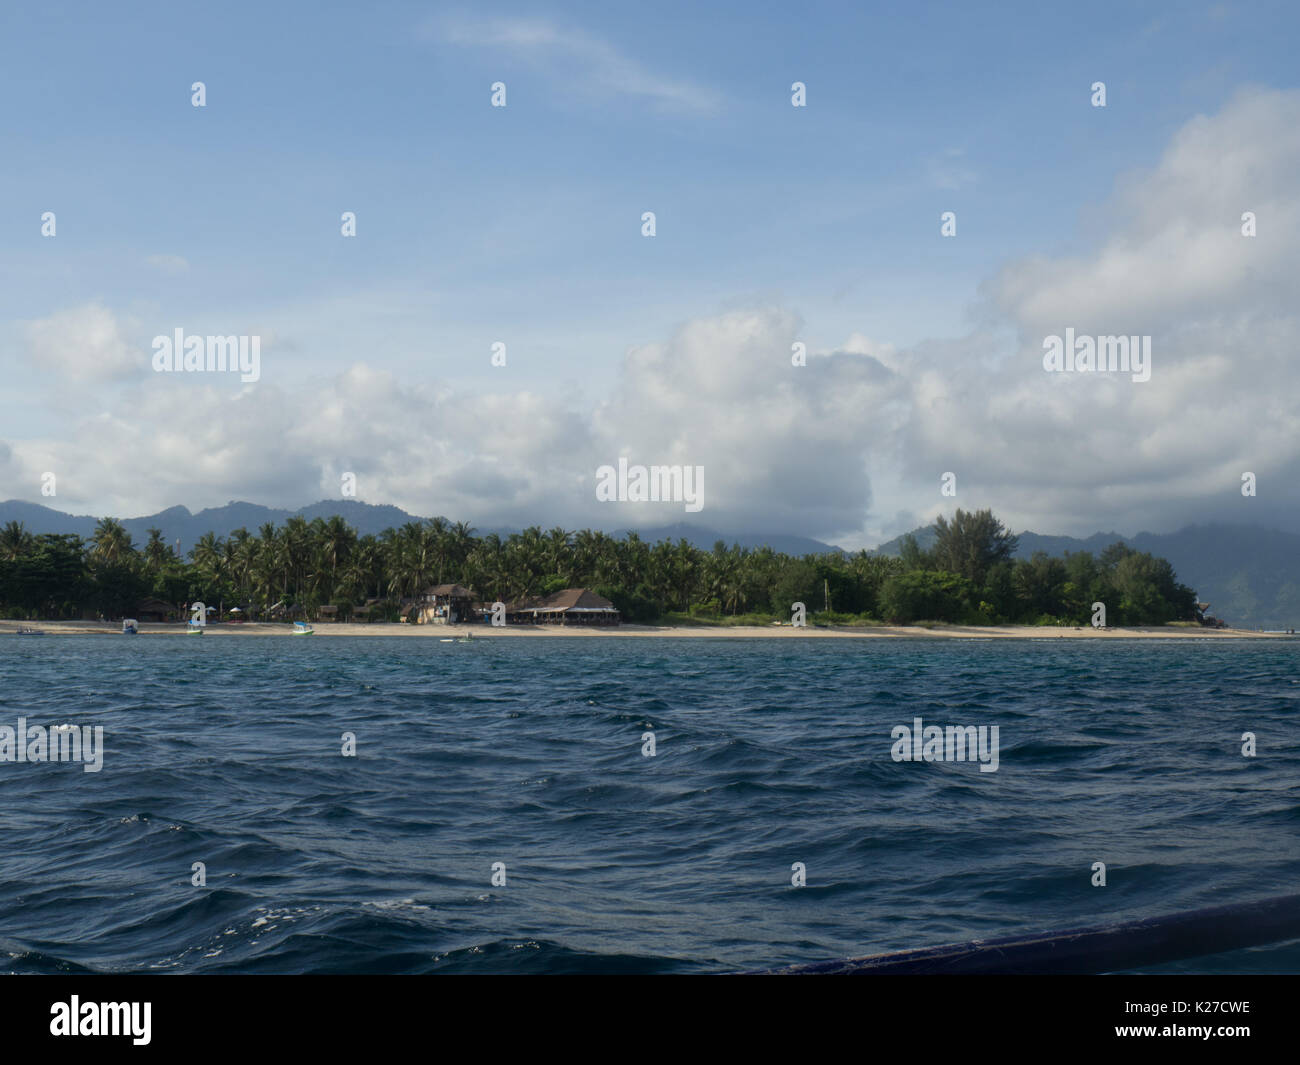 Gili Air from the sea - Stock Image